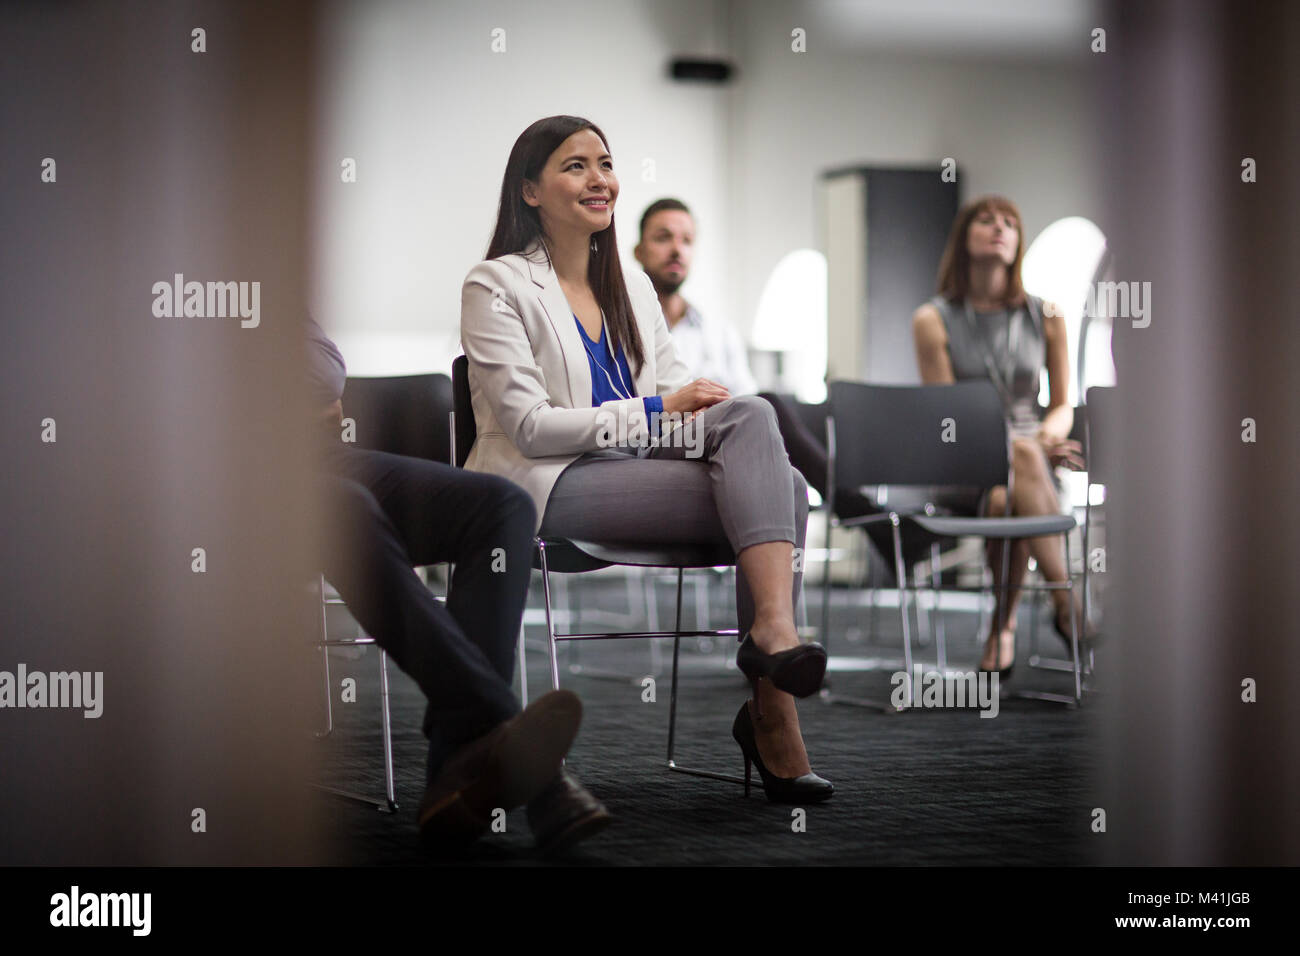 Female executive listening at a business conference - Stock Image